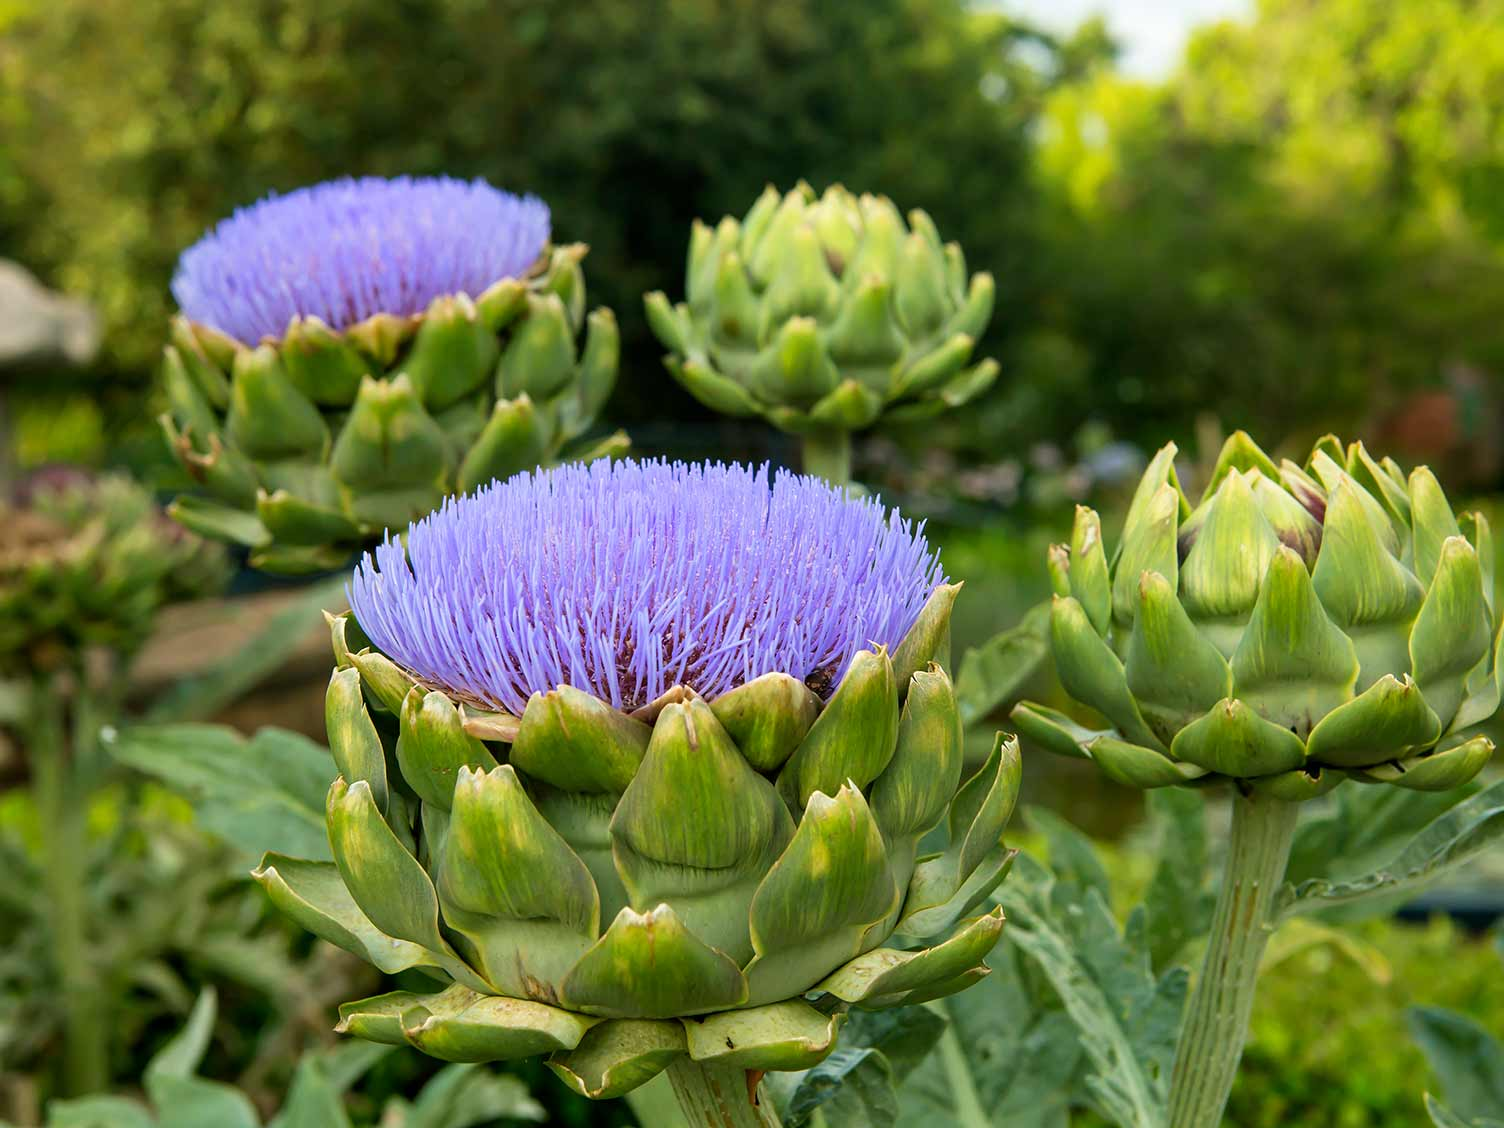 A guide on how to grow artichokes